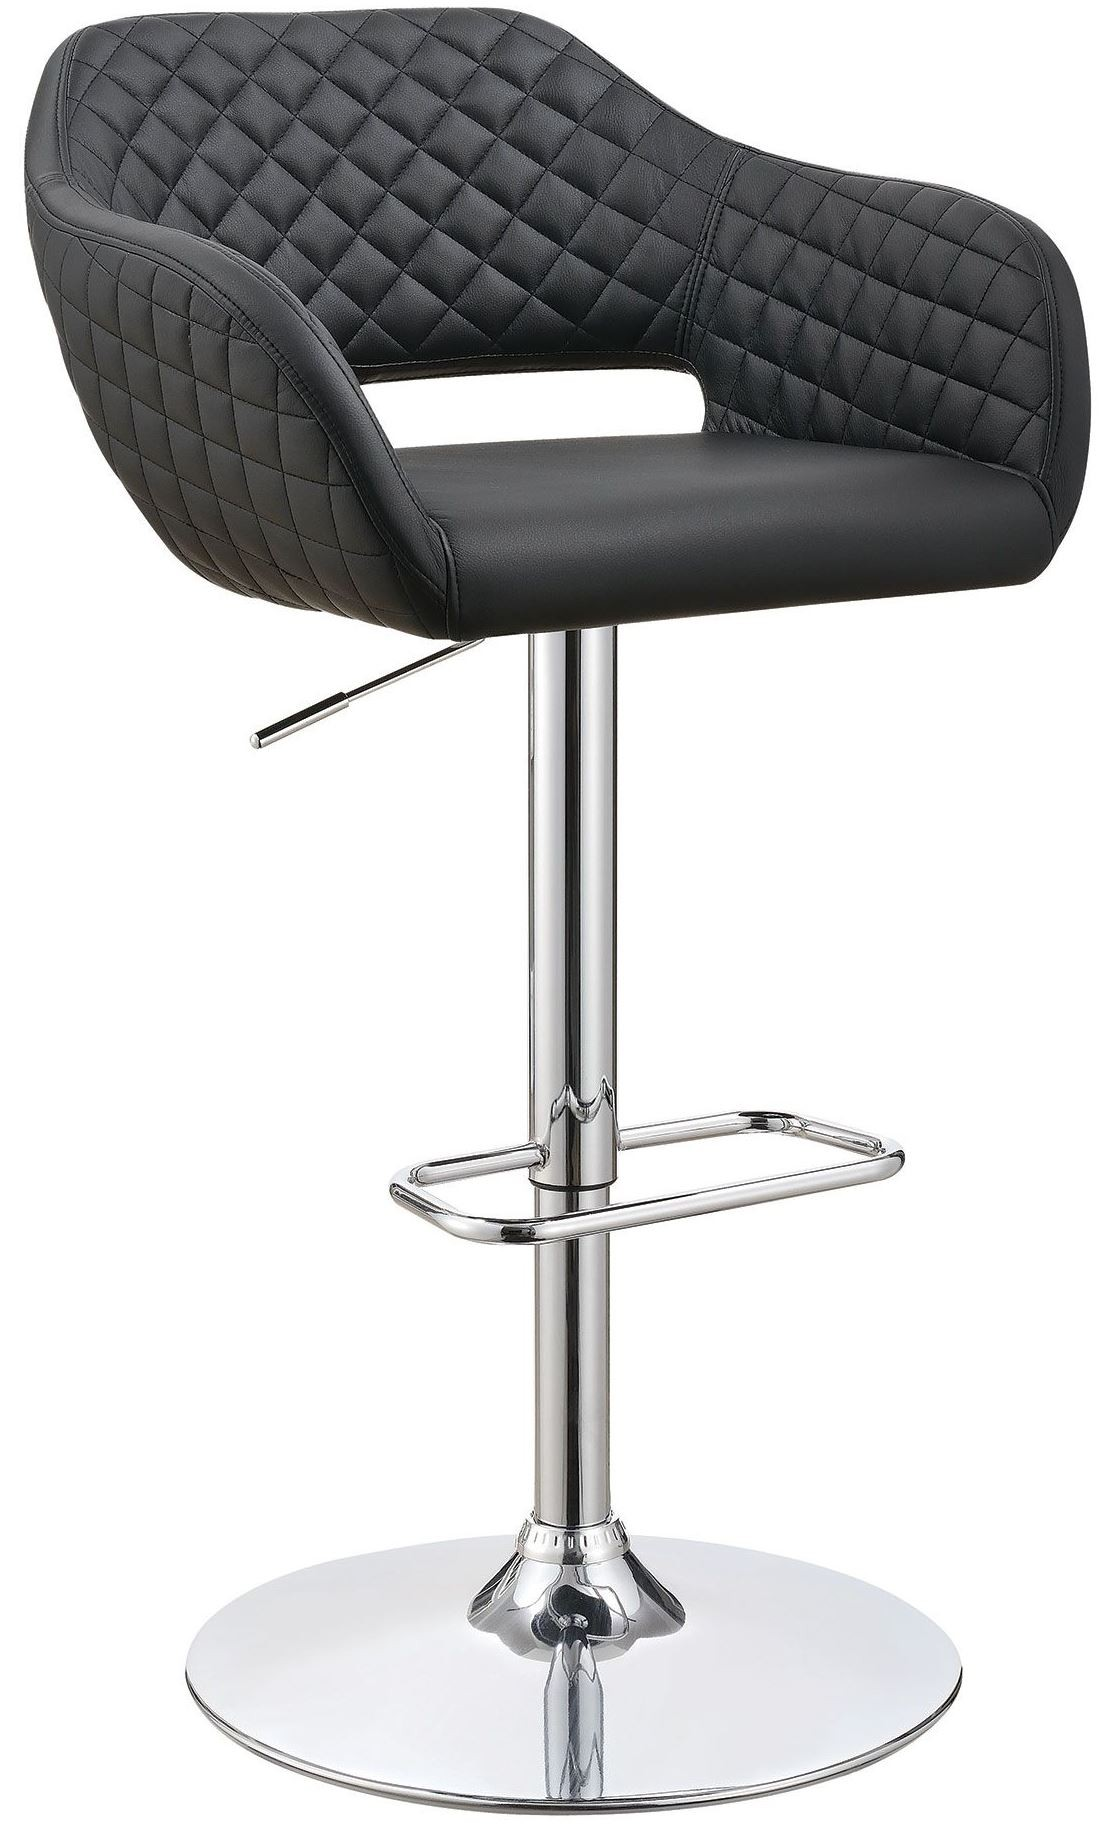 25 Quot Black Adjustable Bar Stool From Coaster Coleman